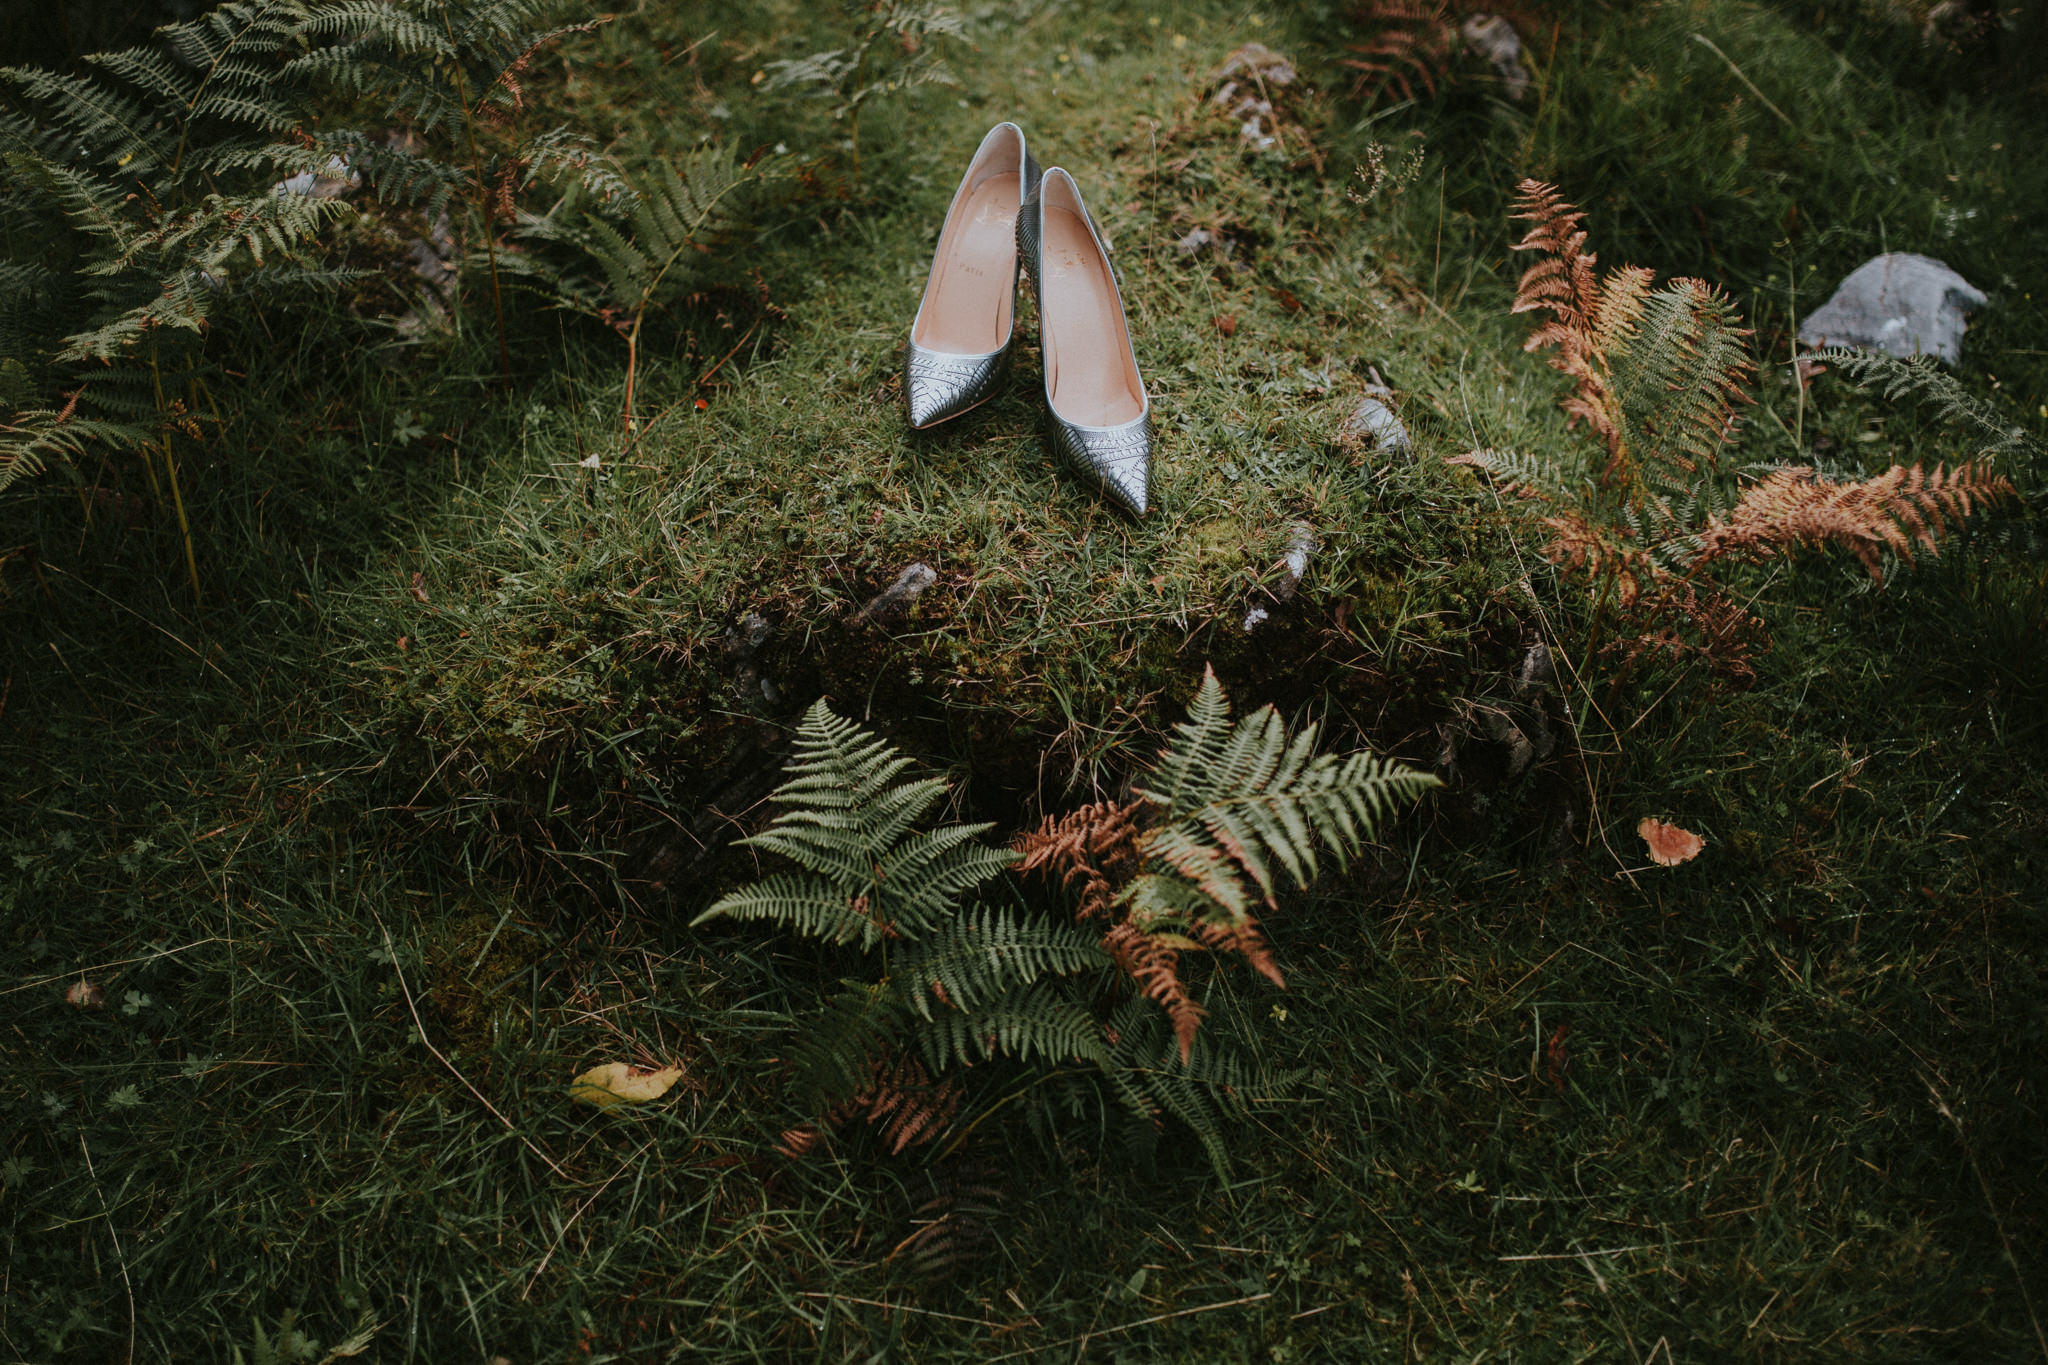 The wedding shoes are sitting on a mossy patch next to ferns.